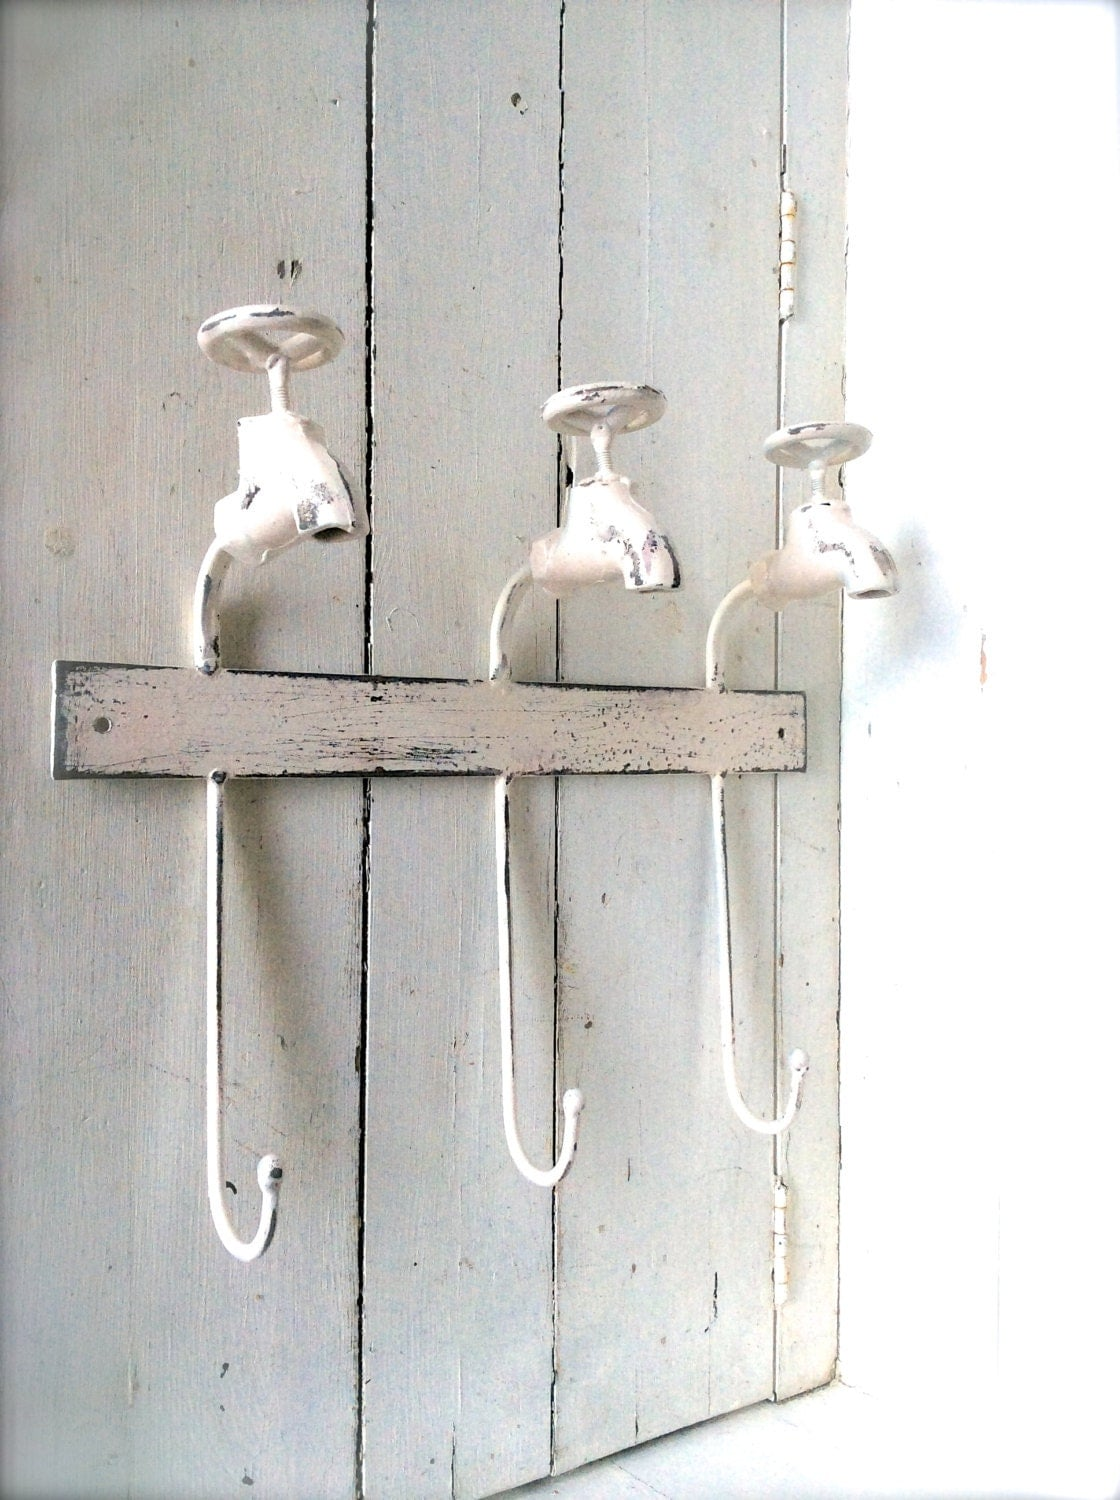 Shabby chic bathroom decor towel hook towel by honeywoodhome for Bathroom decor etsy